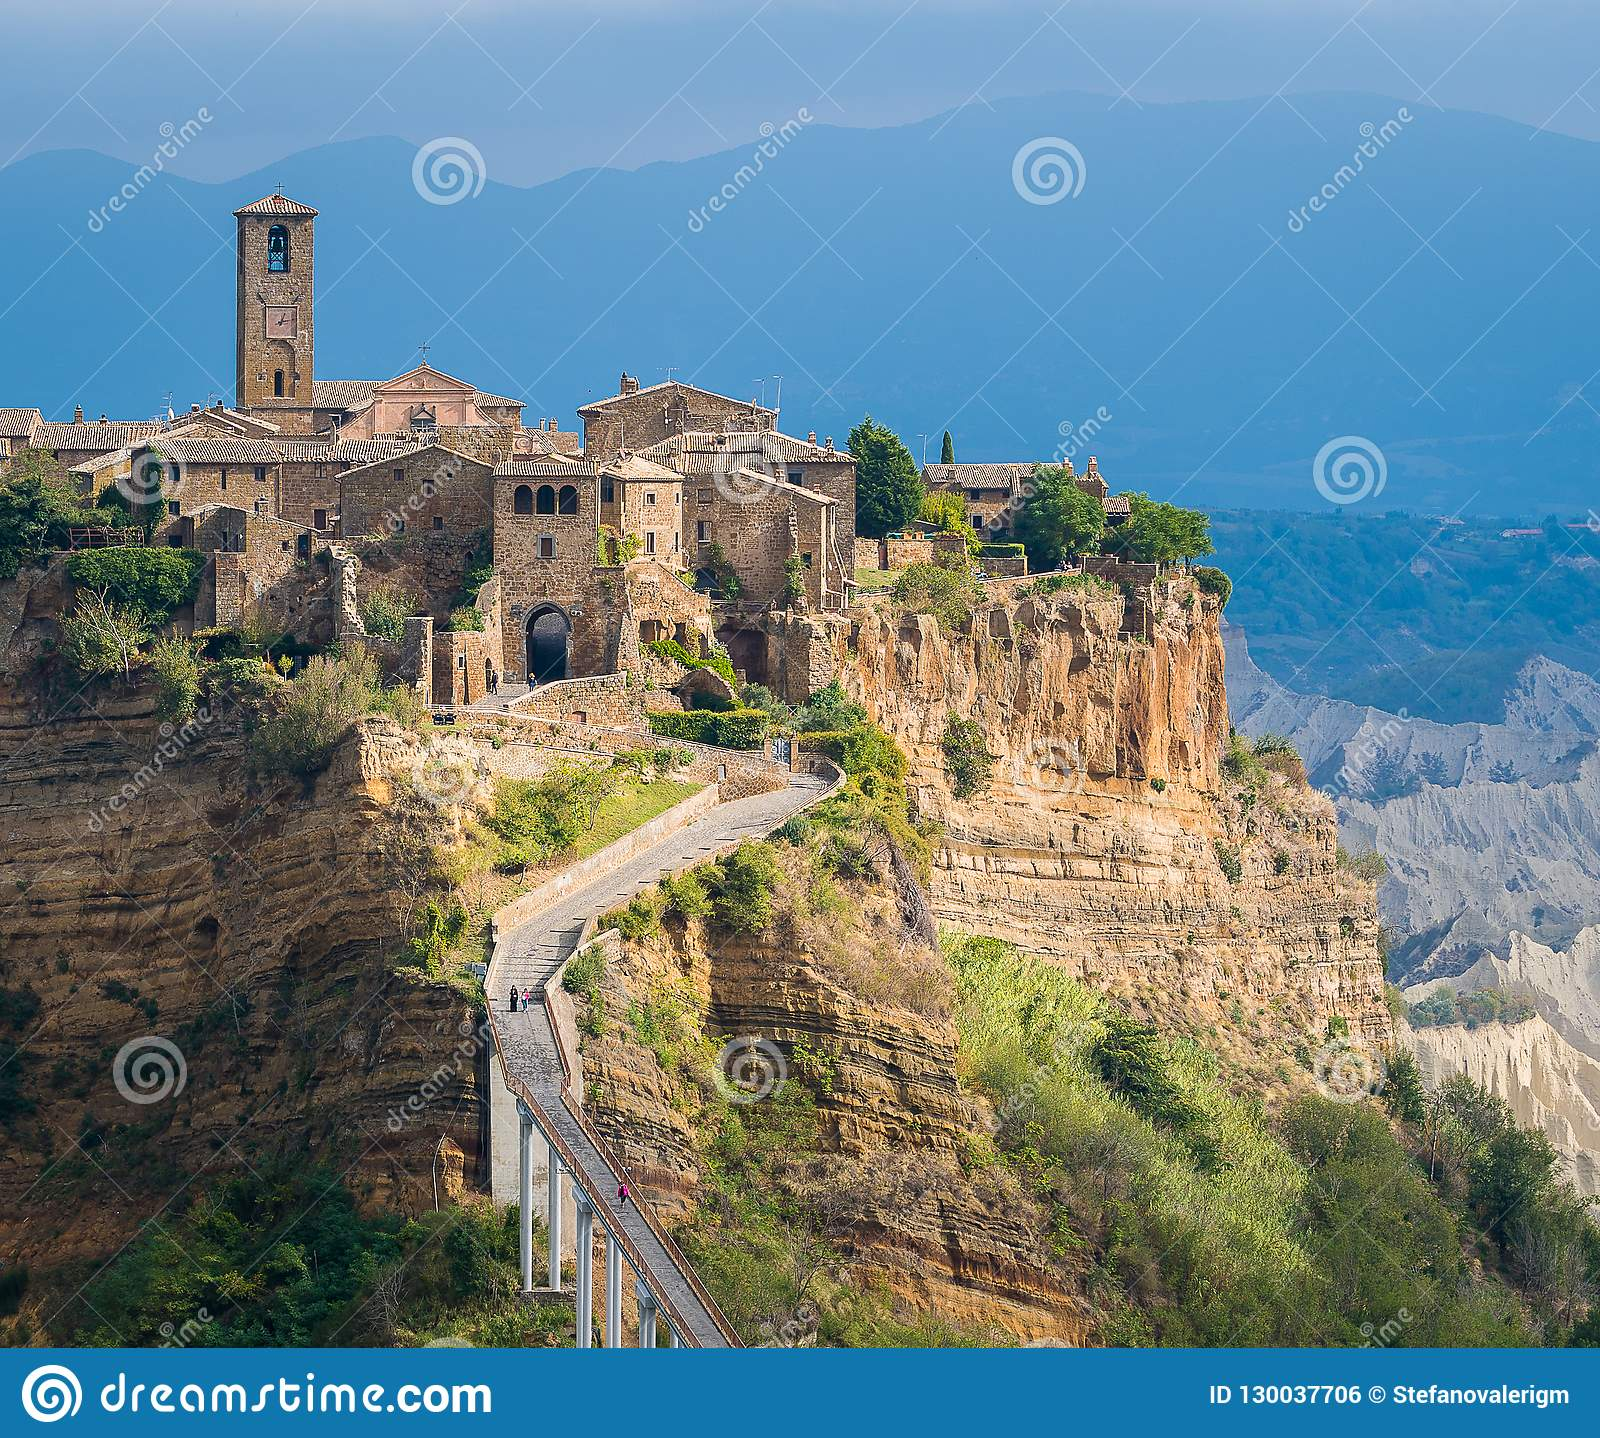 The famous Civita di Bagnoregio hit by the sun on a stormy day. Province of Viterbo, Lazio, Italy.